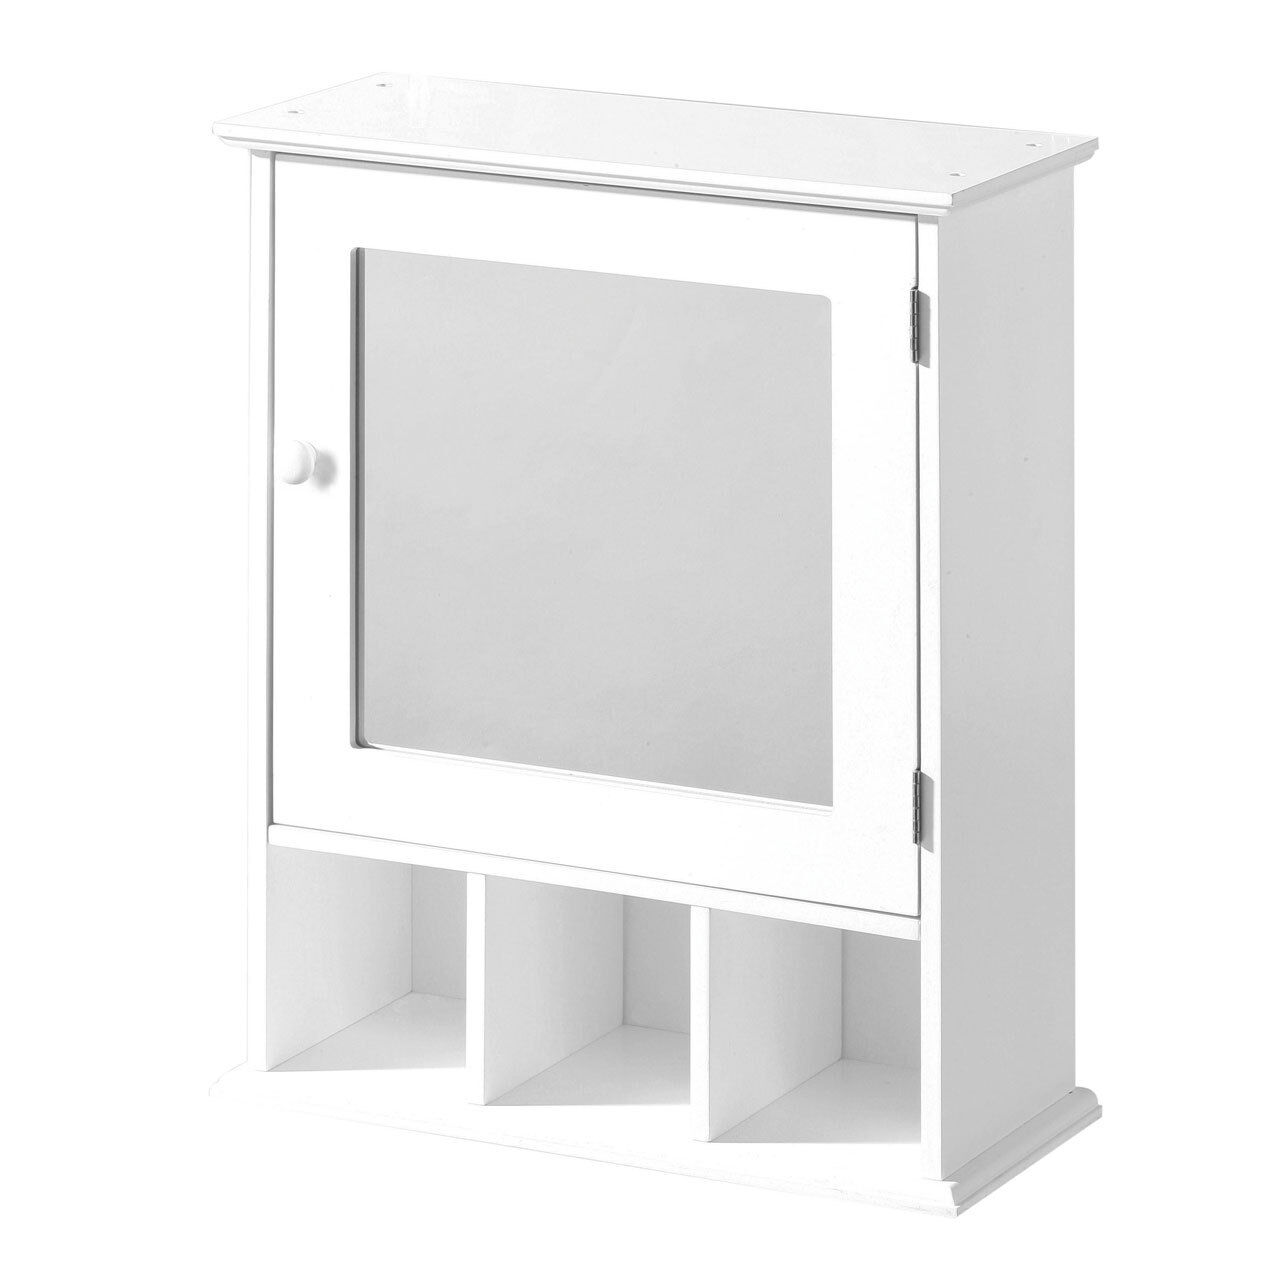 White Wood Wall Mounted Bathroom Cabinet Unit Mirrored